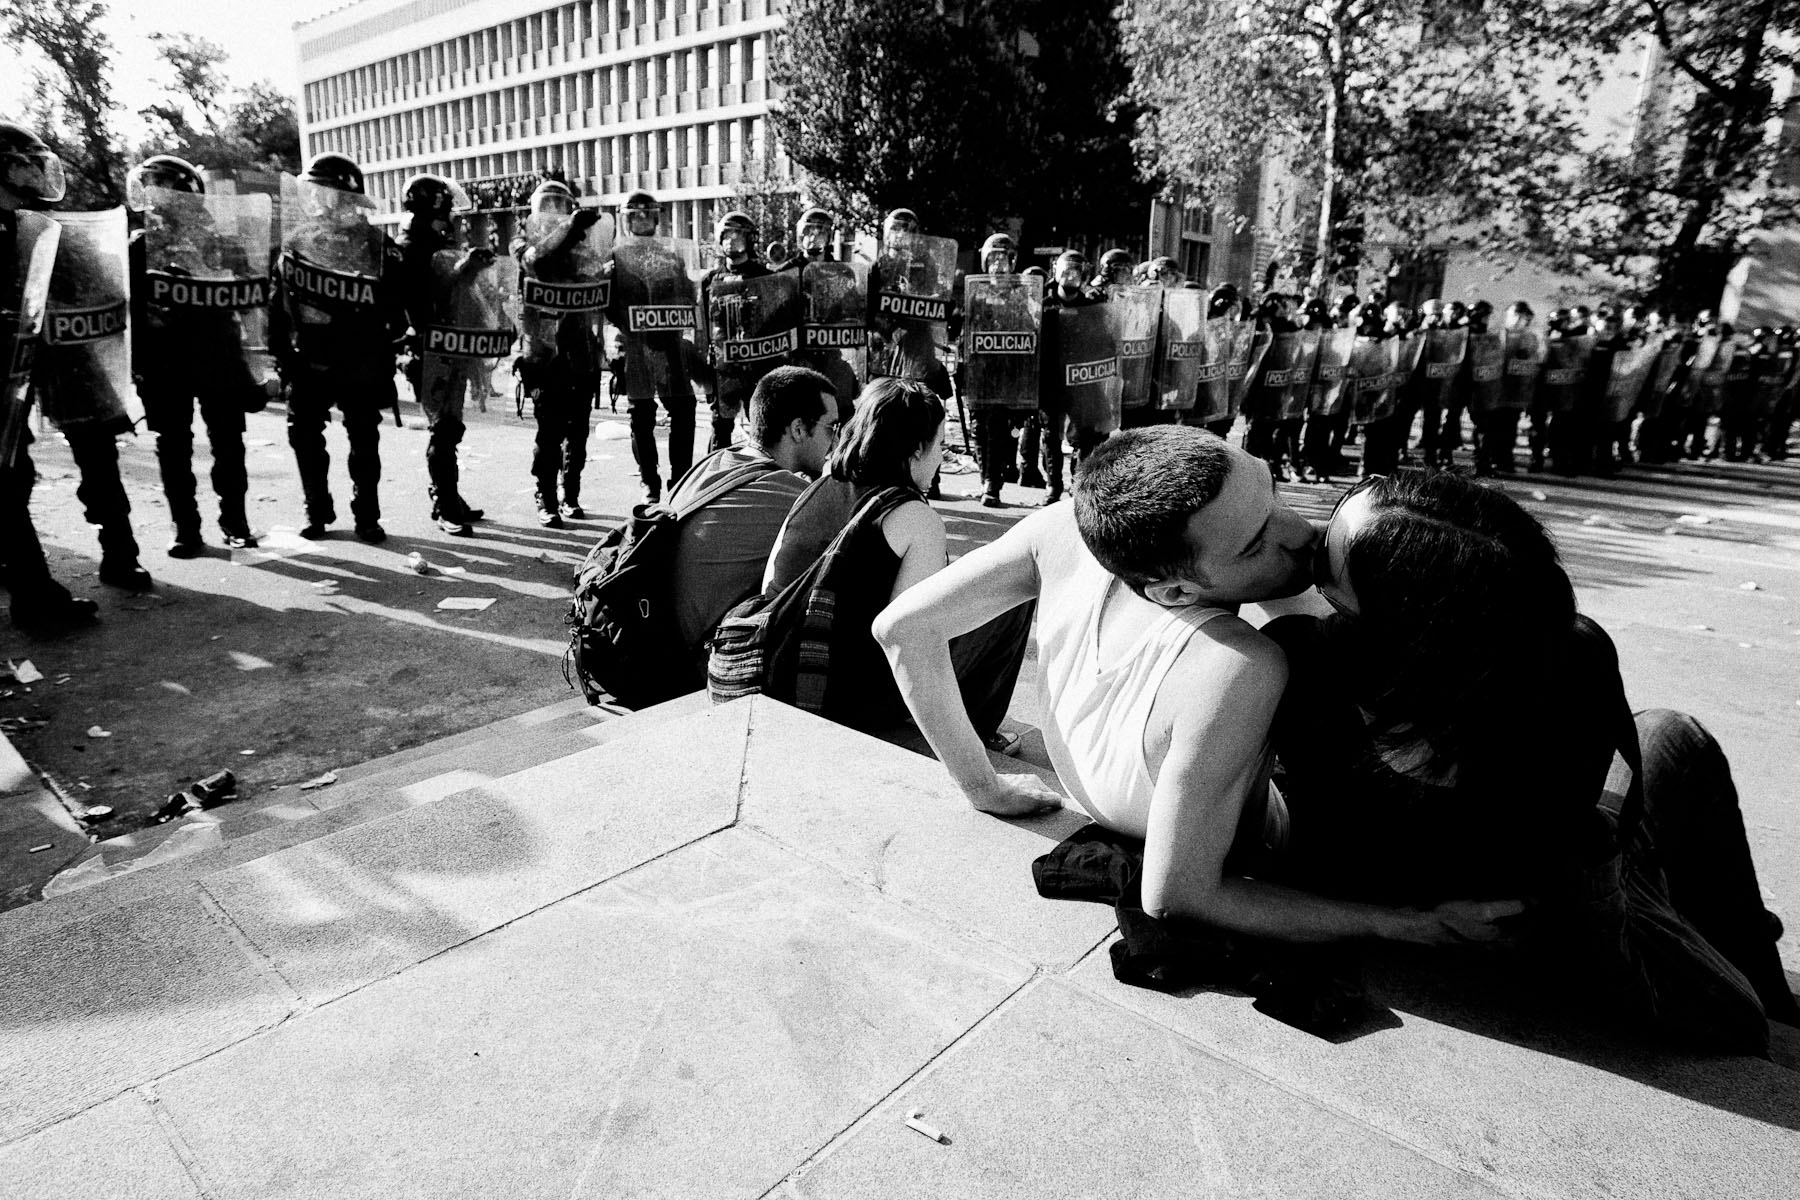 Students kiss to a backdrop of riot police on guard in front of the Slovenian parliament building after the anti-government student protests in Ljubljana, May 19, 2010.